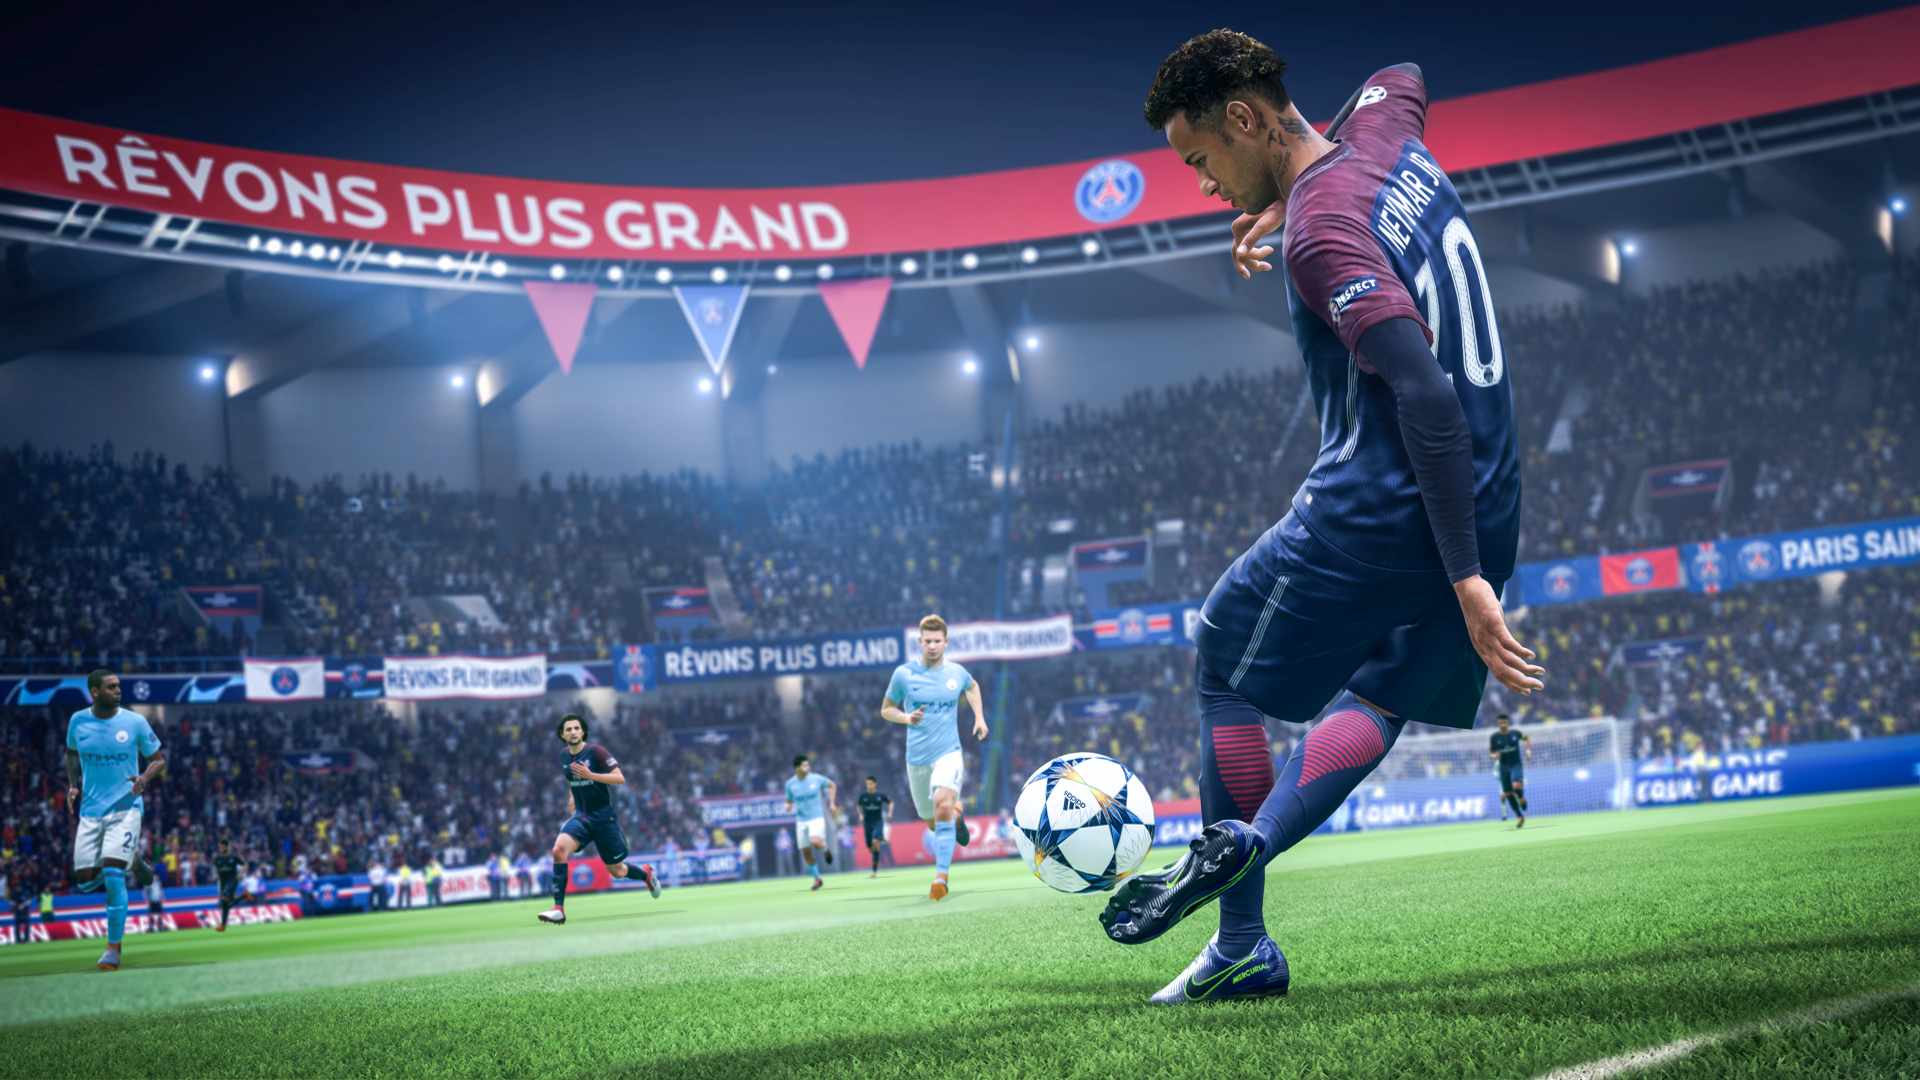 FIFA 19, FIFA 19 Review, Review